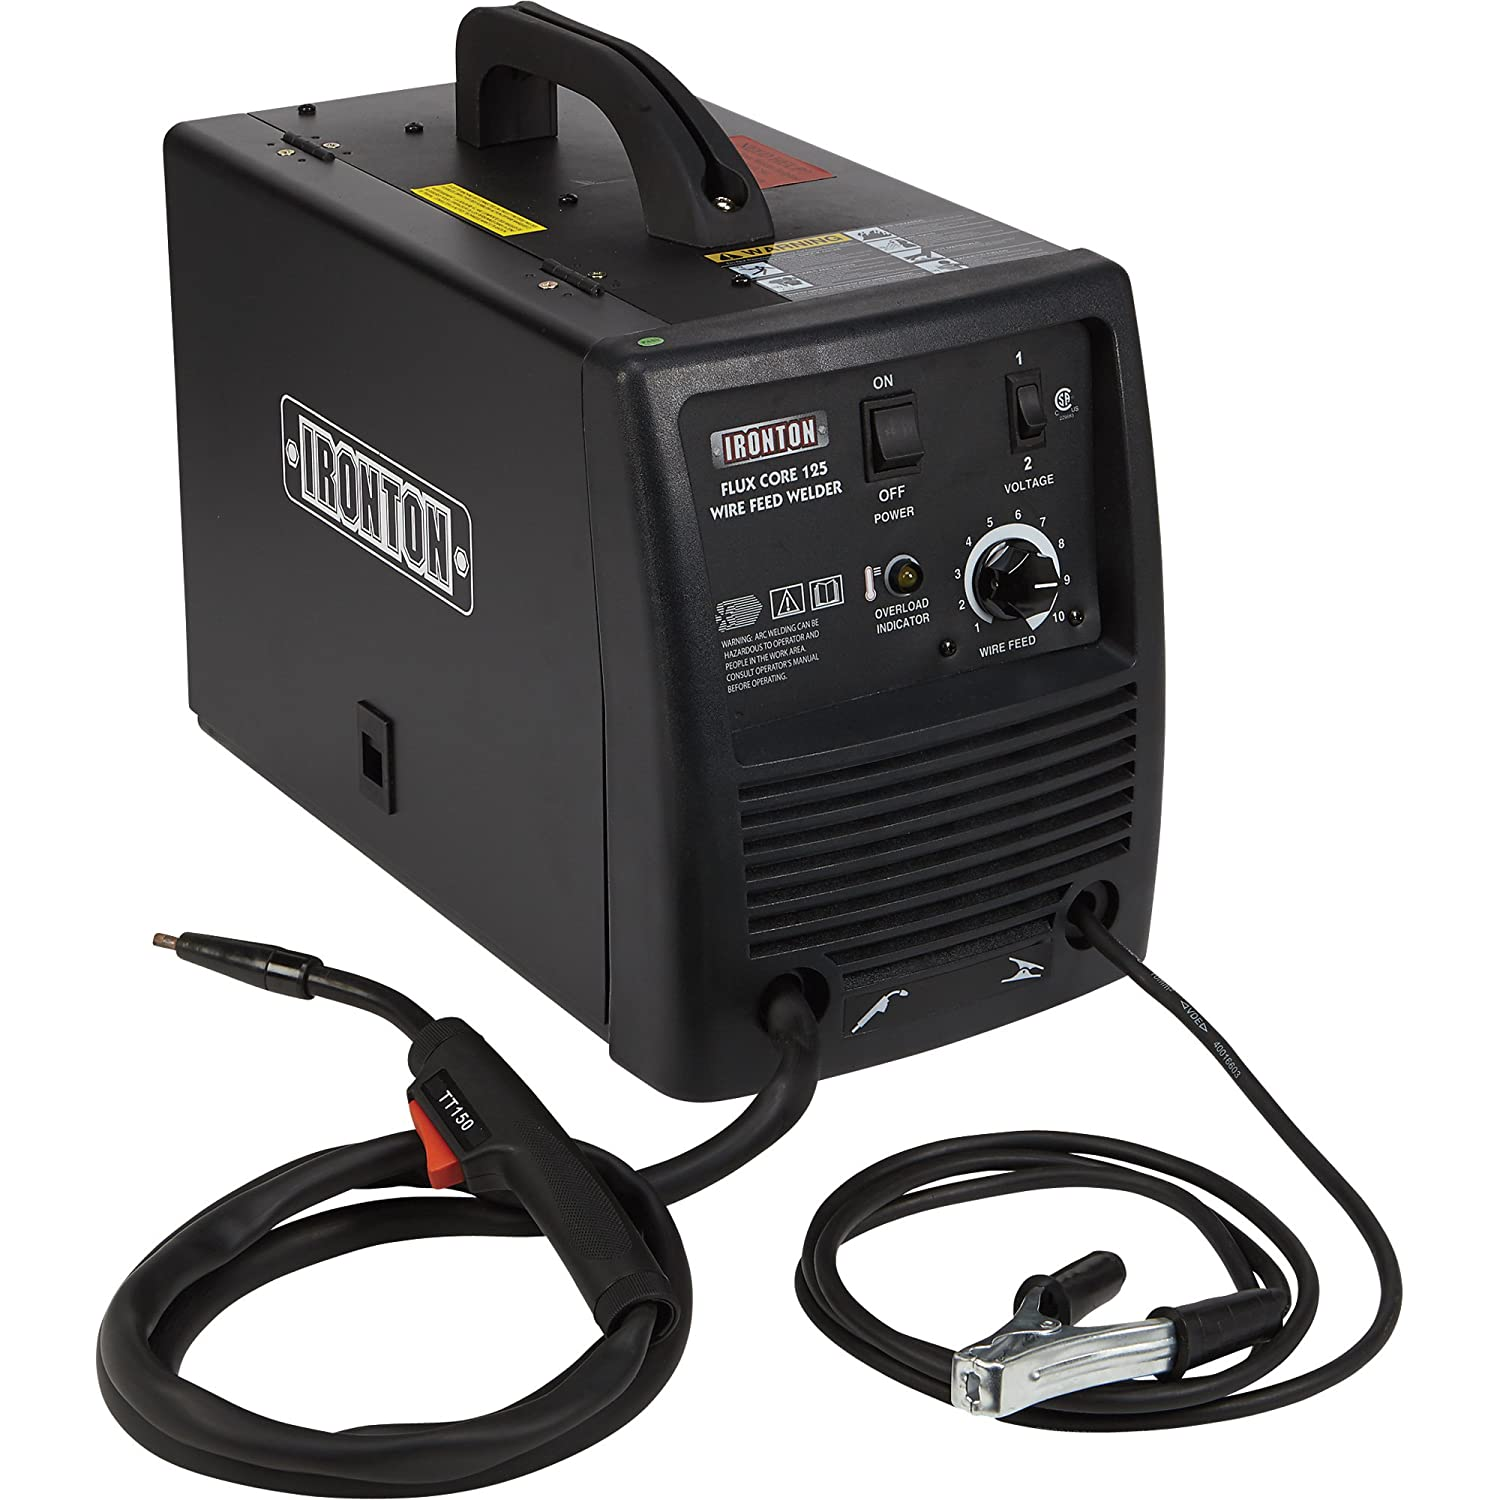 Ironton Flux Core 125 115v Cored Welder Amp Output Wiring A